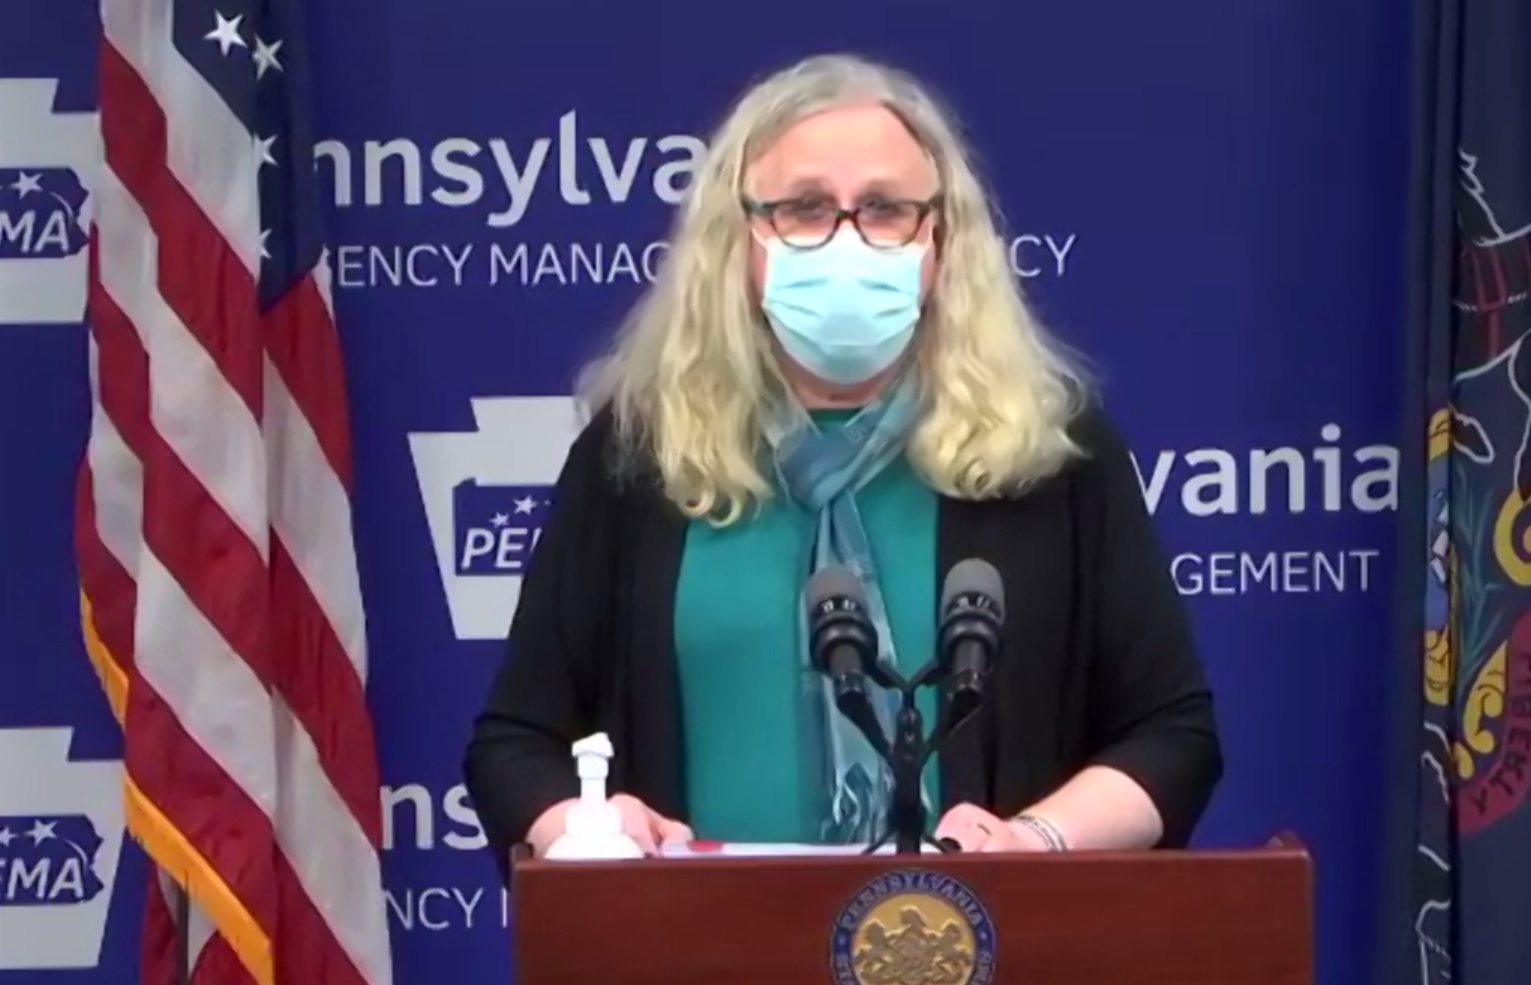 Pa. Health Secretary Dr. Rachel Levine speaks at a media briefing on Thursday, Nov. 19, 2020. Levine is wearing a mask in compliance with the stricter mask mandate she implemented this week.